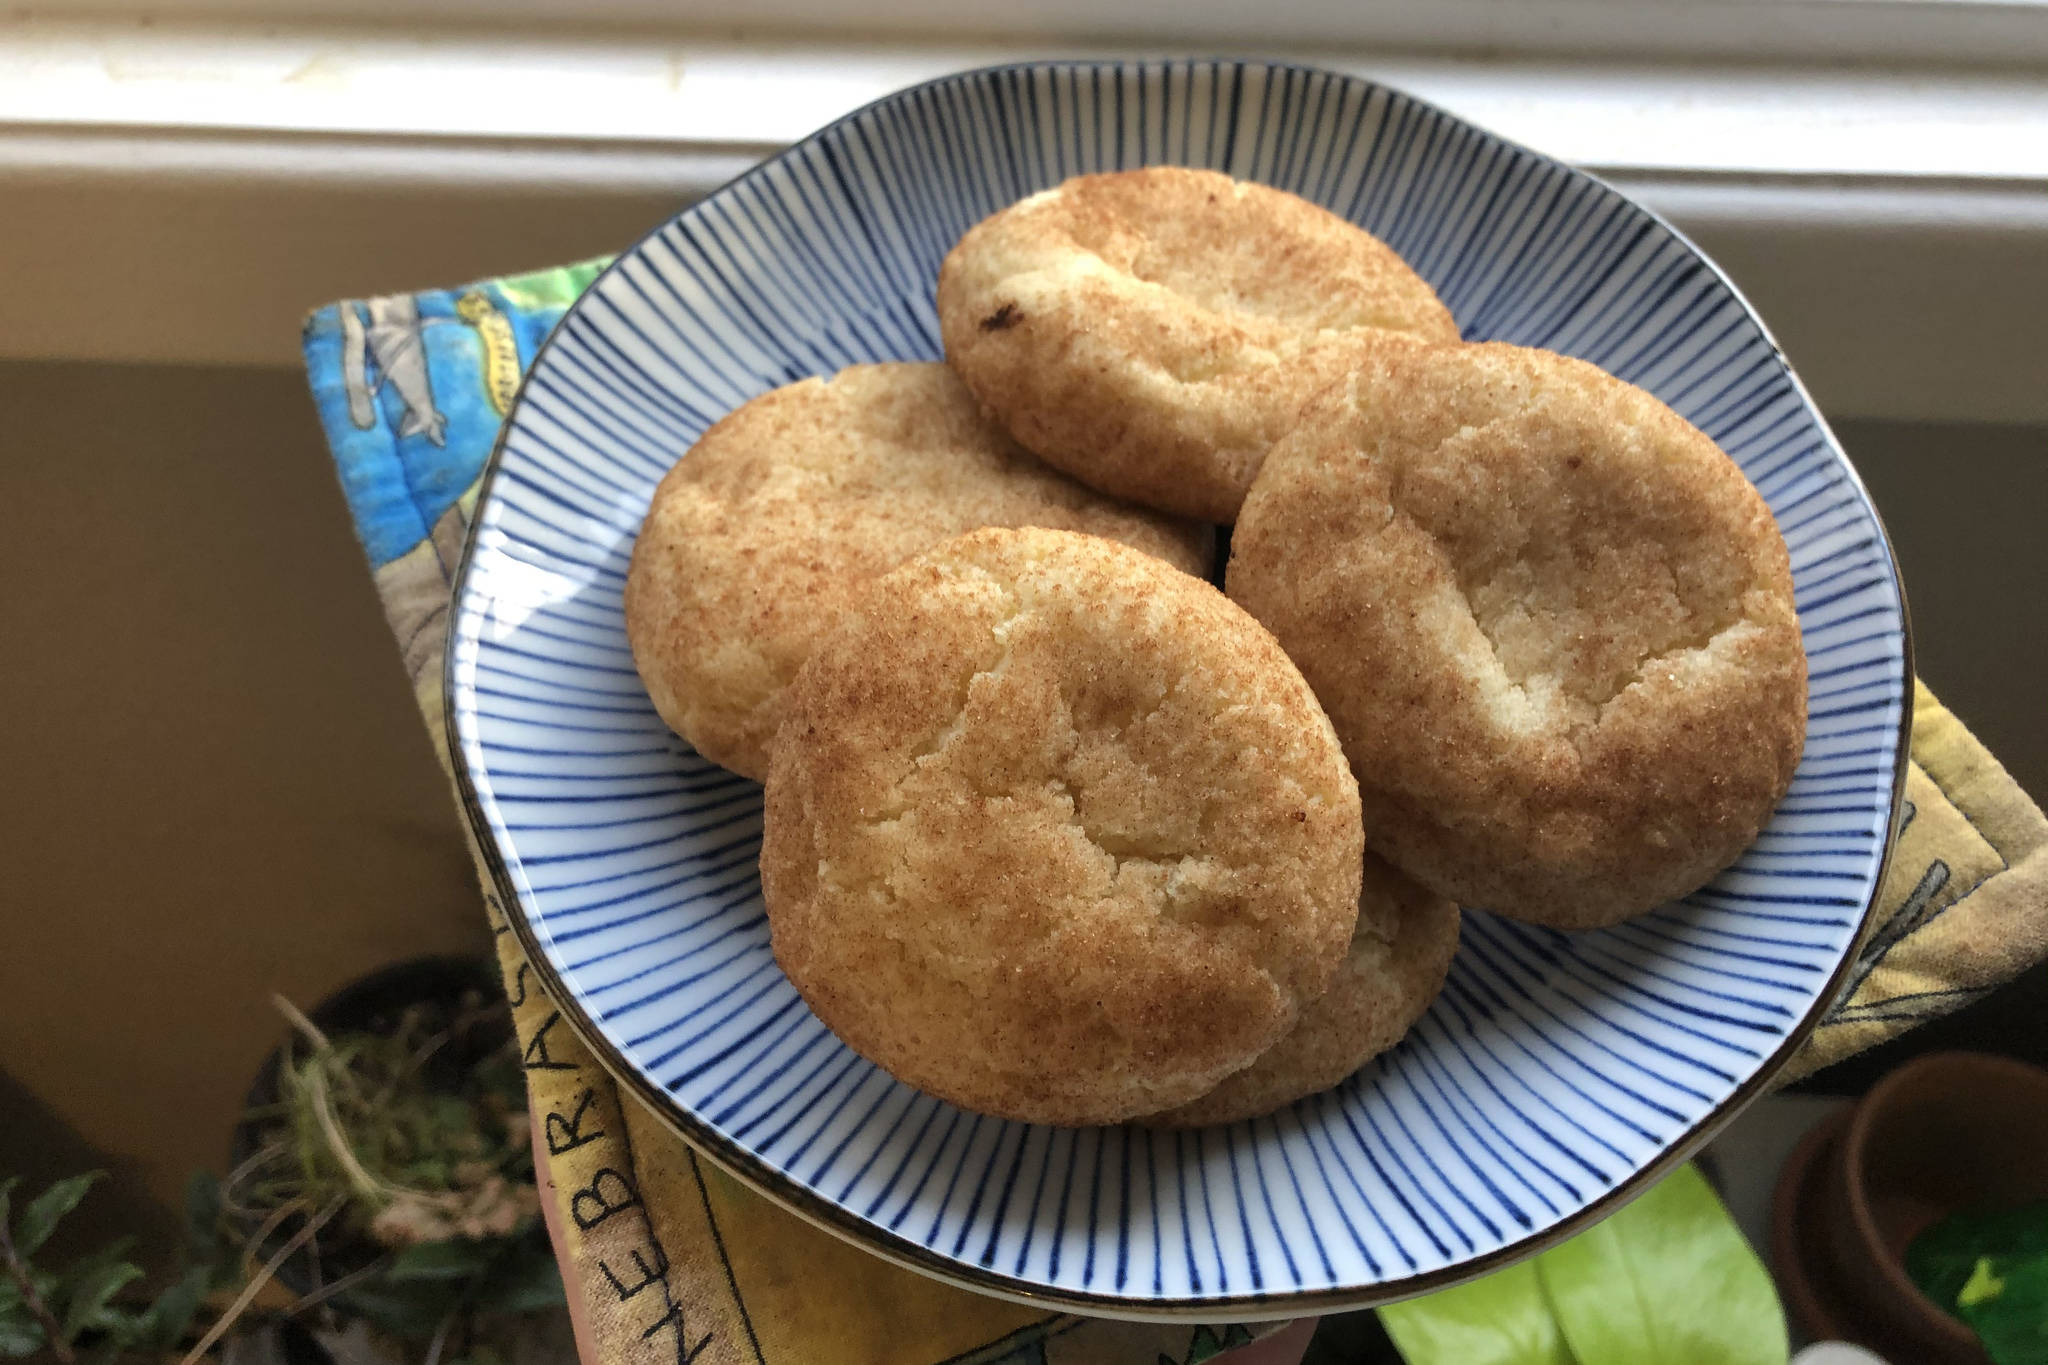 Snickerdoodle cookies have a distinct cinnamon sugar scrawled shell, photographed on Saturday, Oct. 10, 2020, in Anchorage, Alaska. (Photo by Victoria Petersen/Peninsula Clarion)